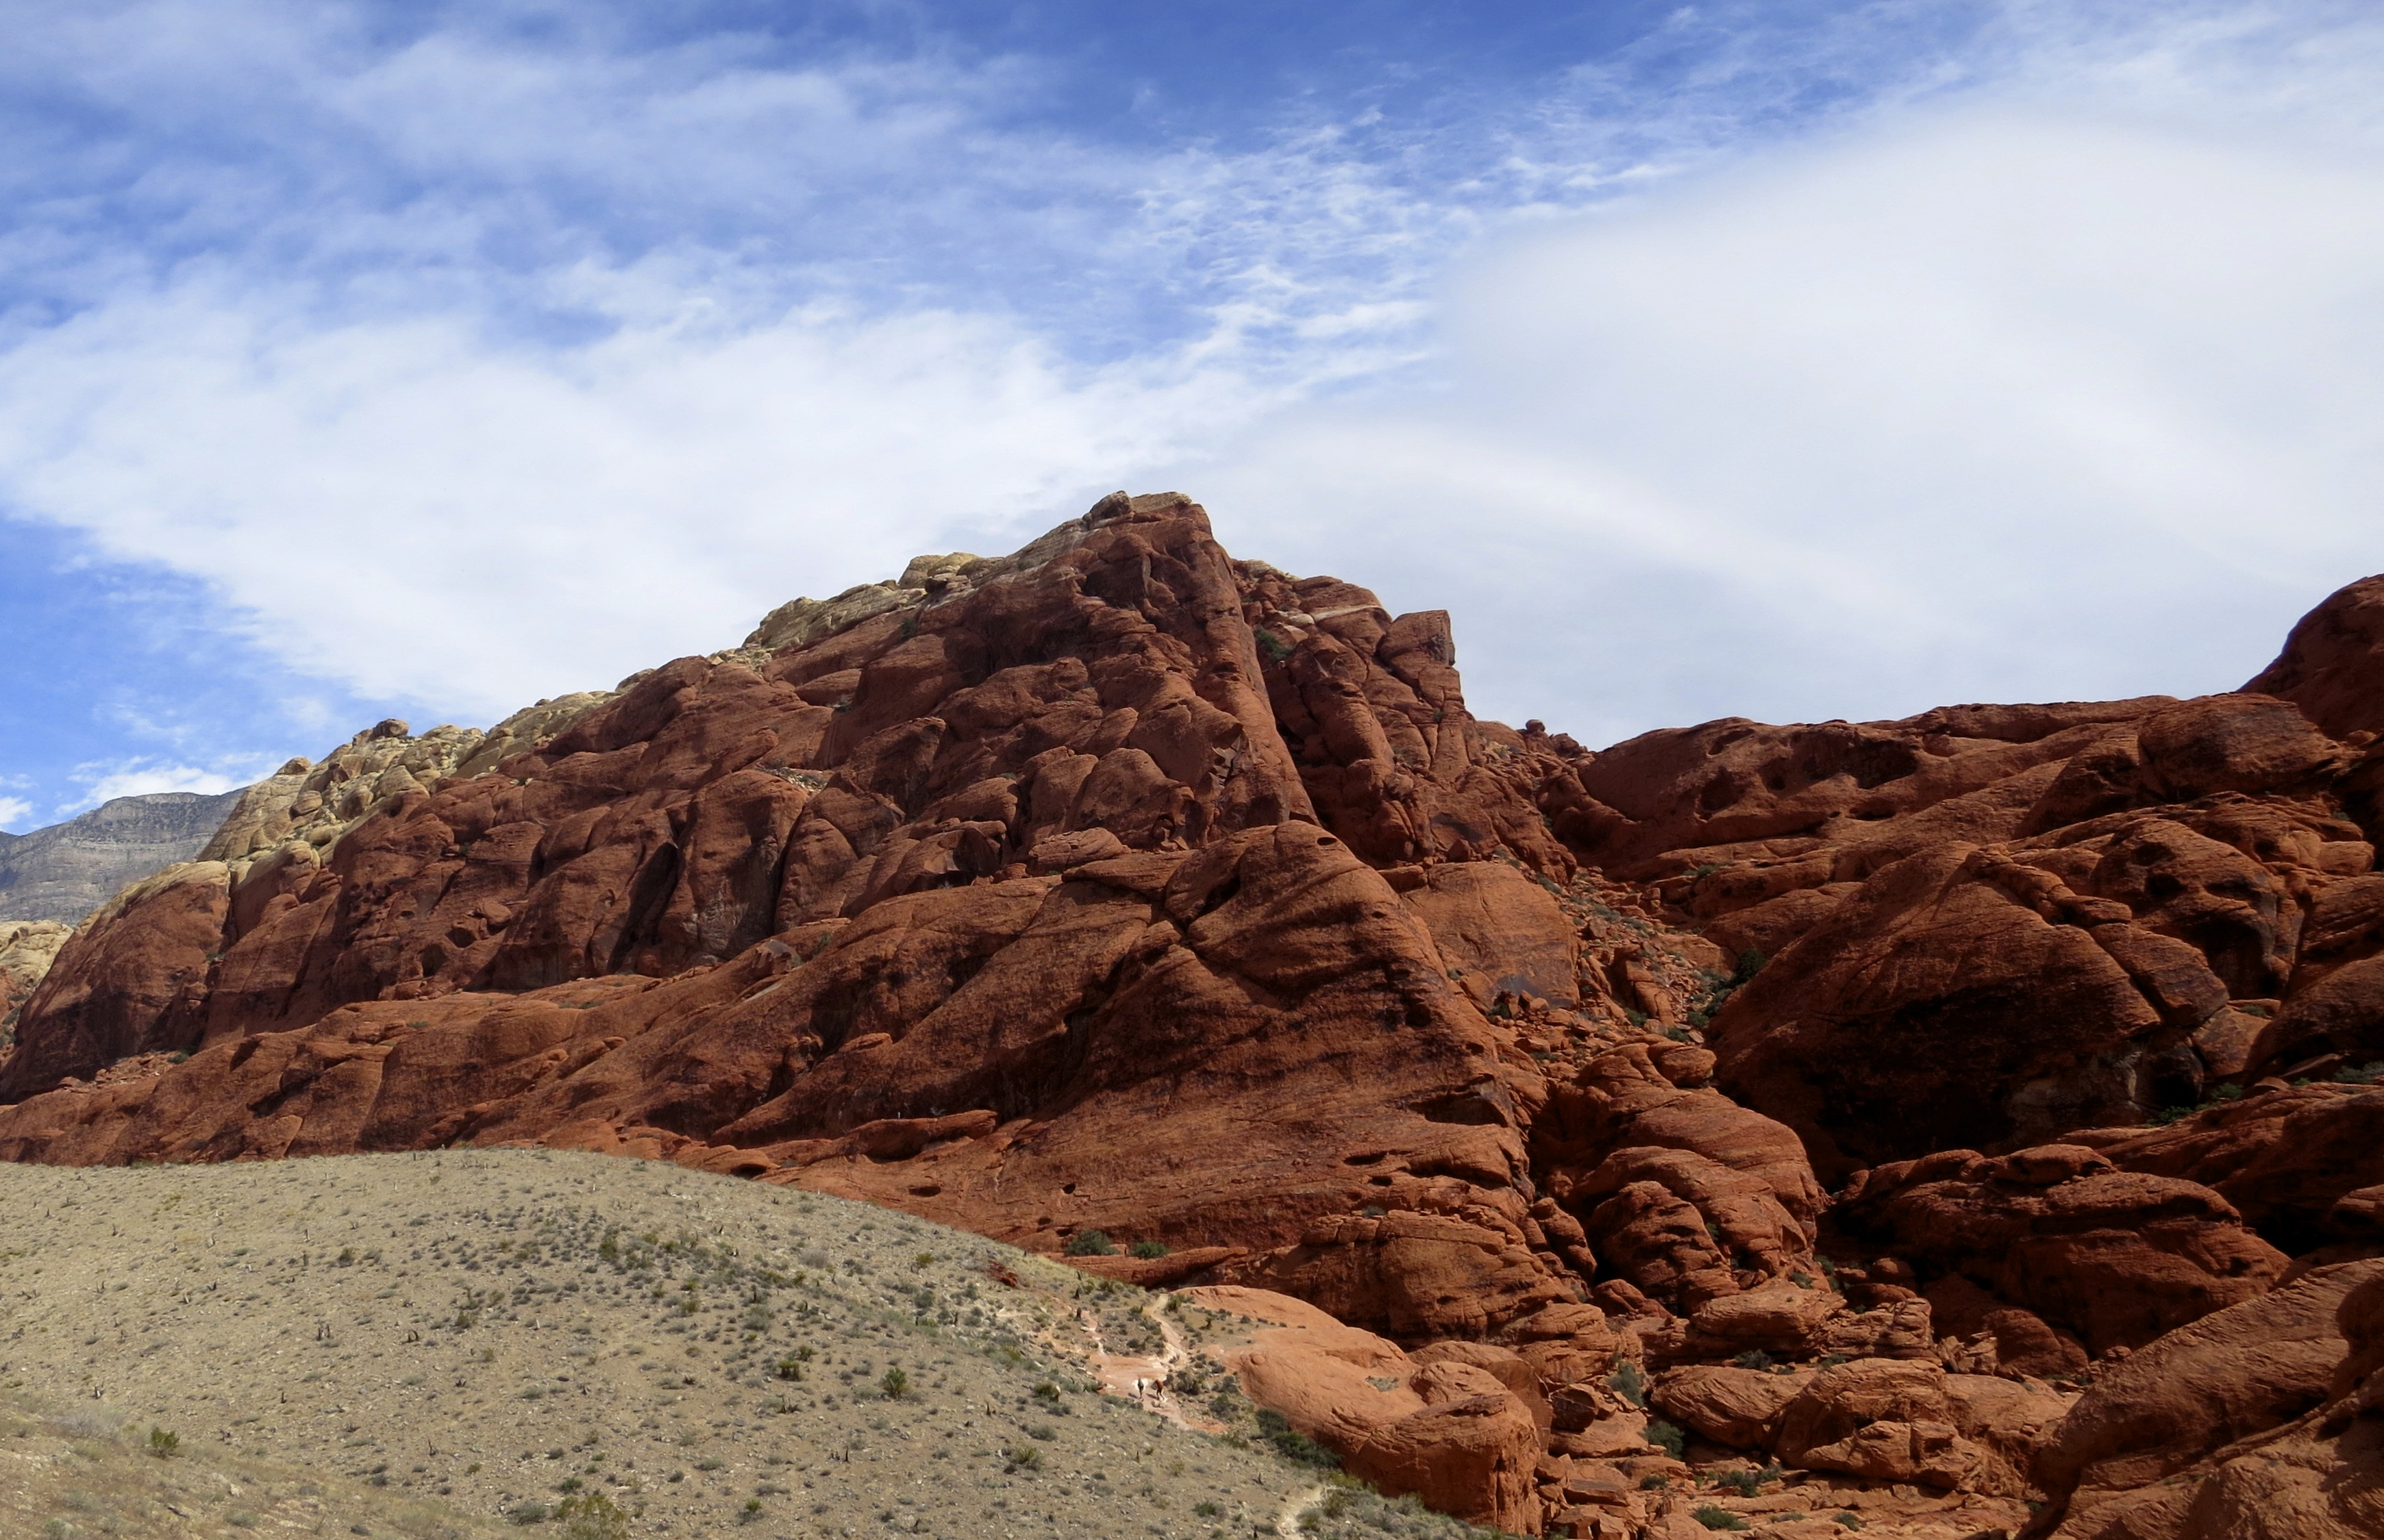 Red sandstone hill in Red Rock Canyon National Conservation Area outside of Las Vegas, Nevada.